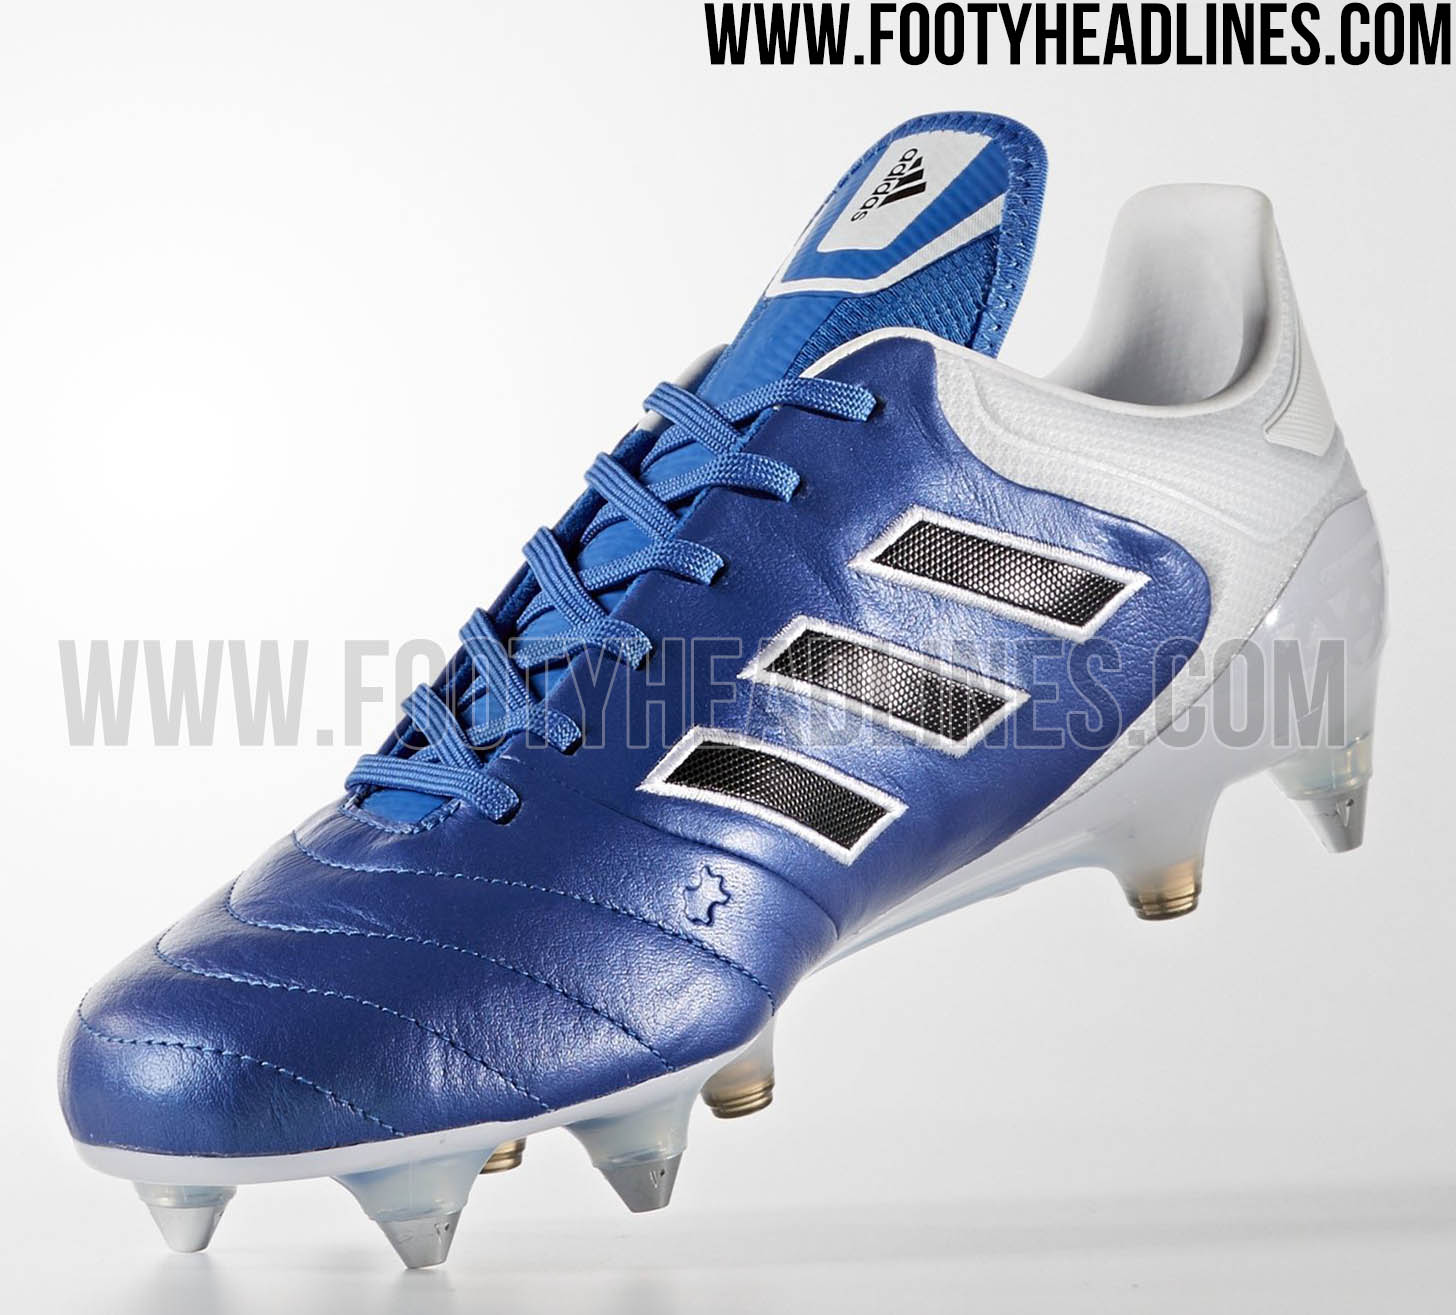 5b64f8862671 ... where to buy adidas copa mundial fg men firm ground football shoes with  blue orange white